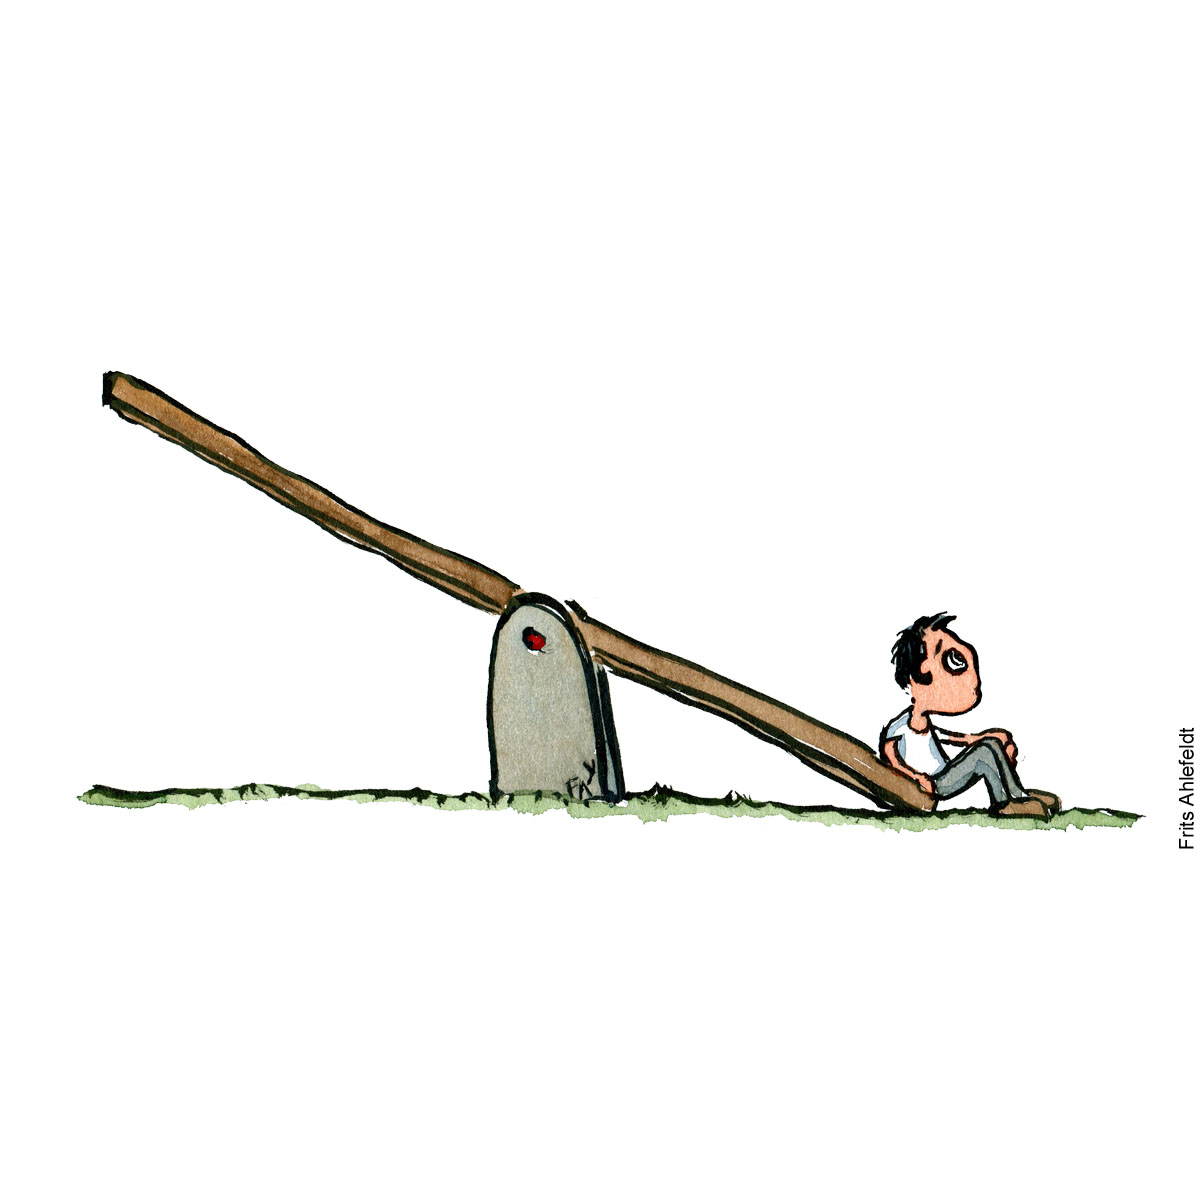 Illustration of a lonely boy on a seesaw. Drawing by Frits Ahlefeldt